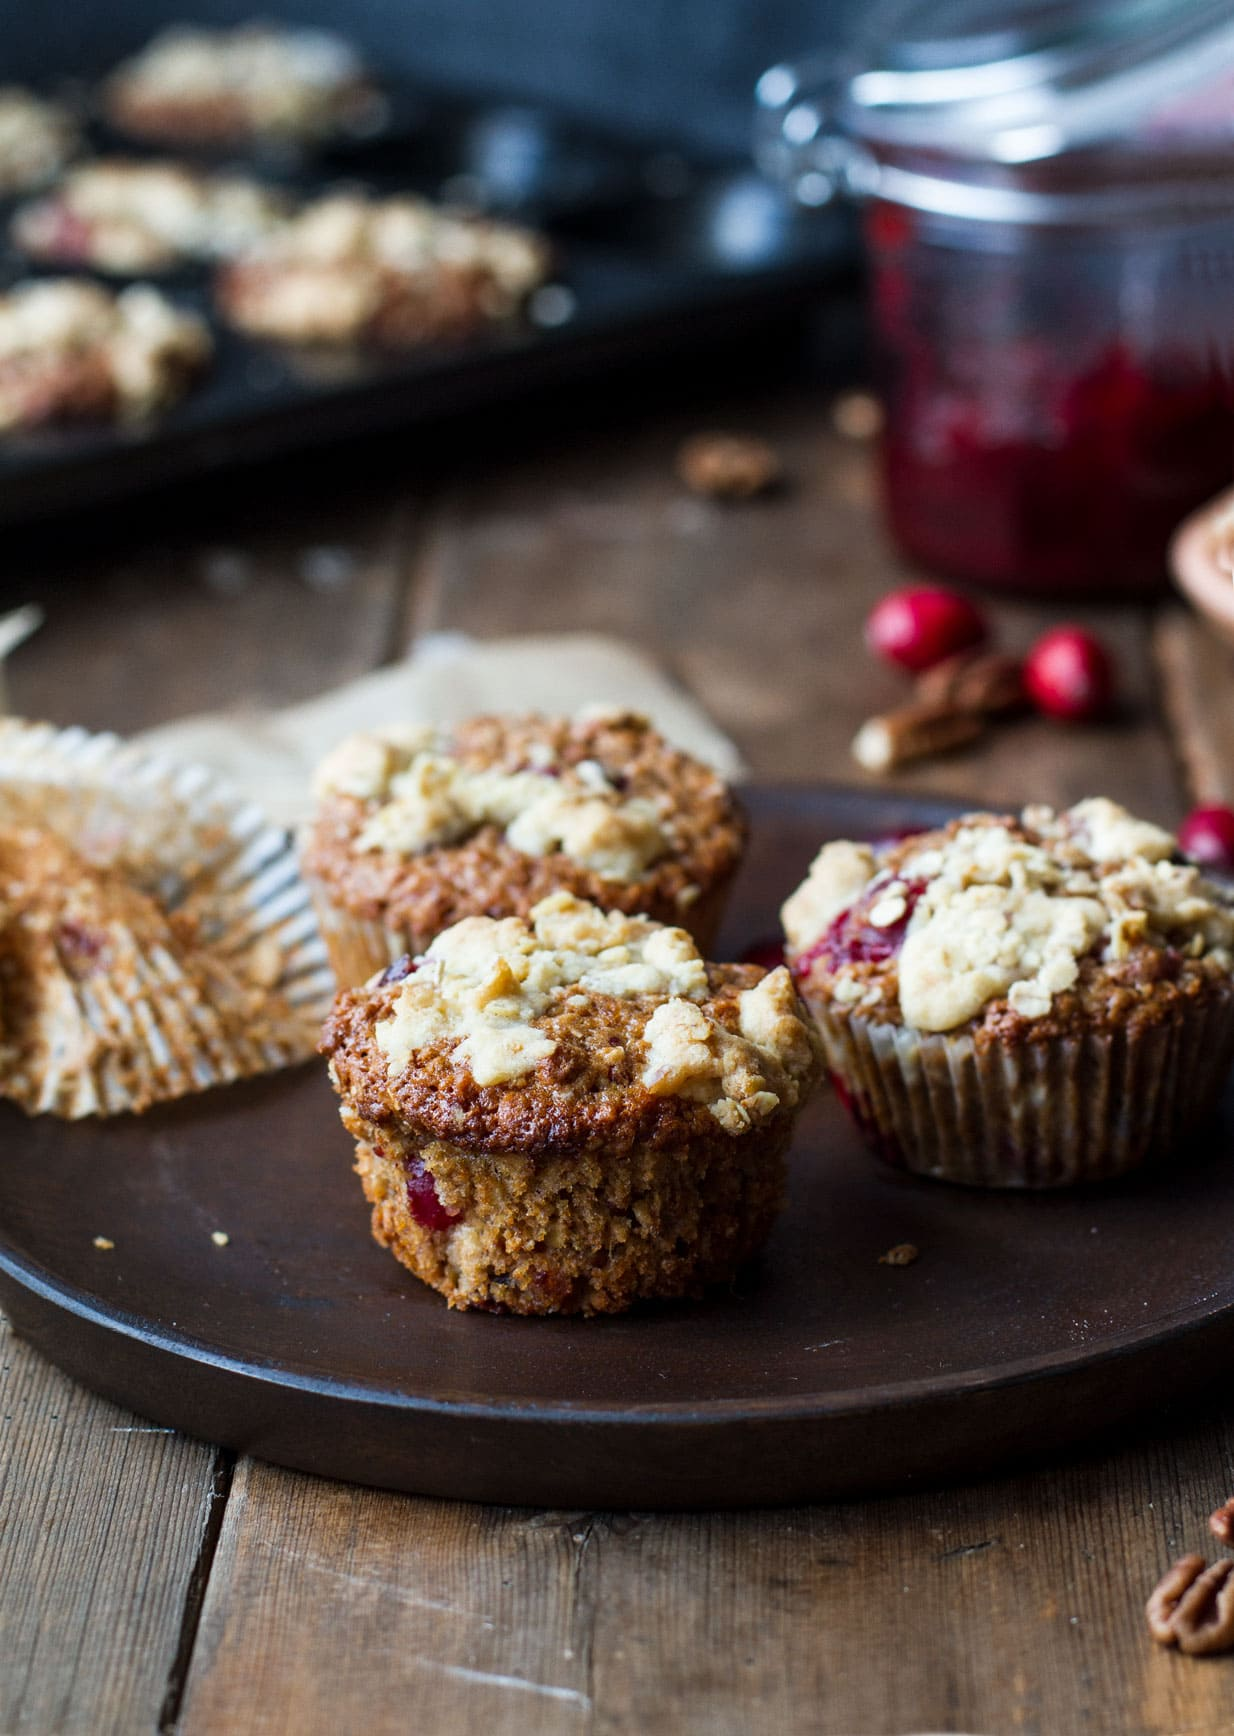 Three cranberry sauce oat breakfast muffins on a wooden plate.